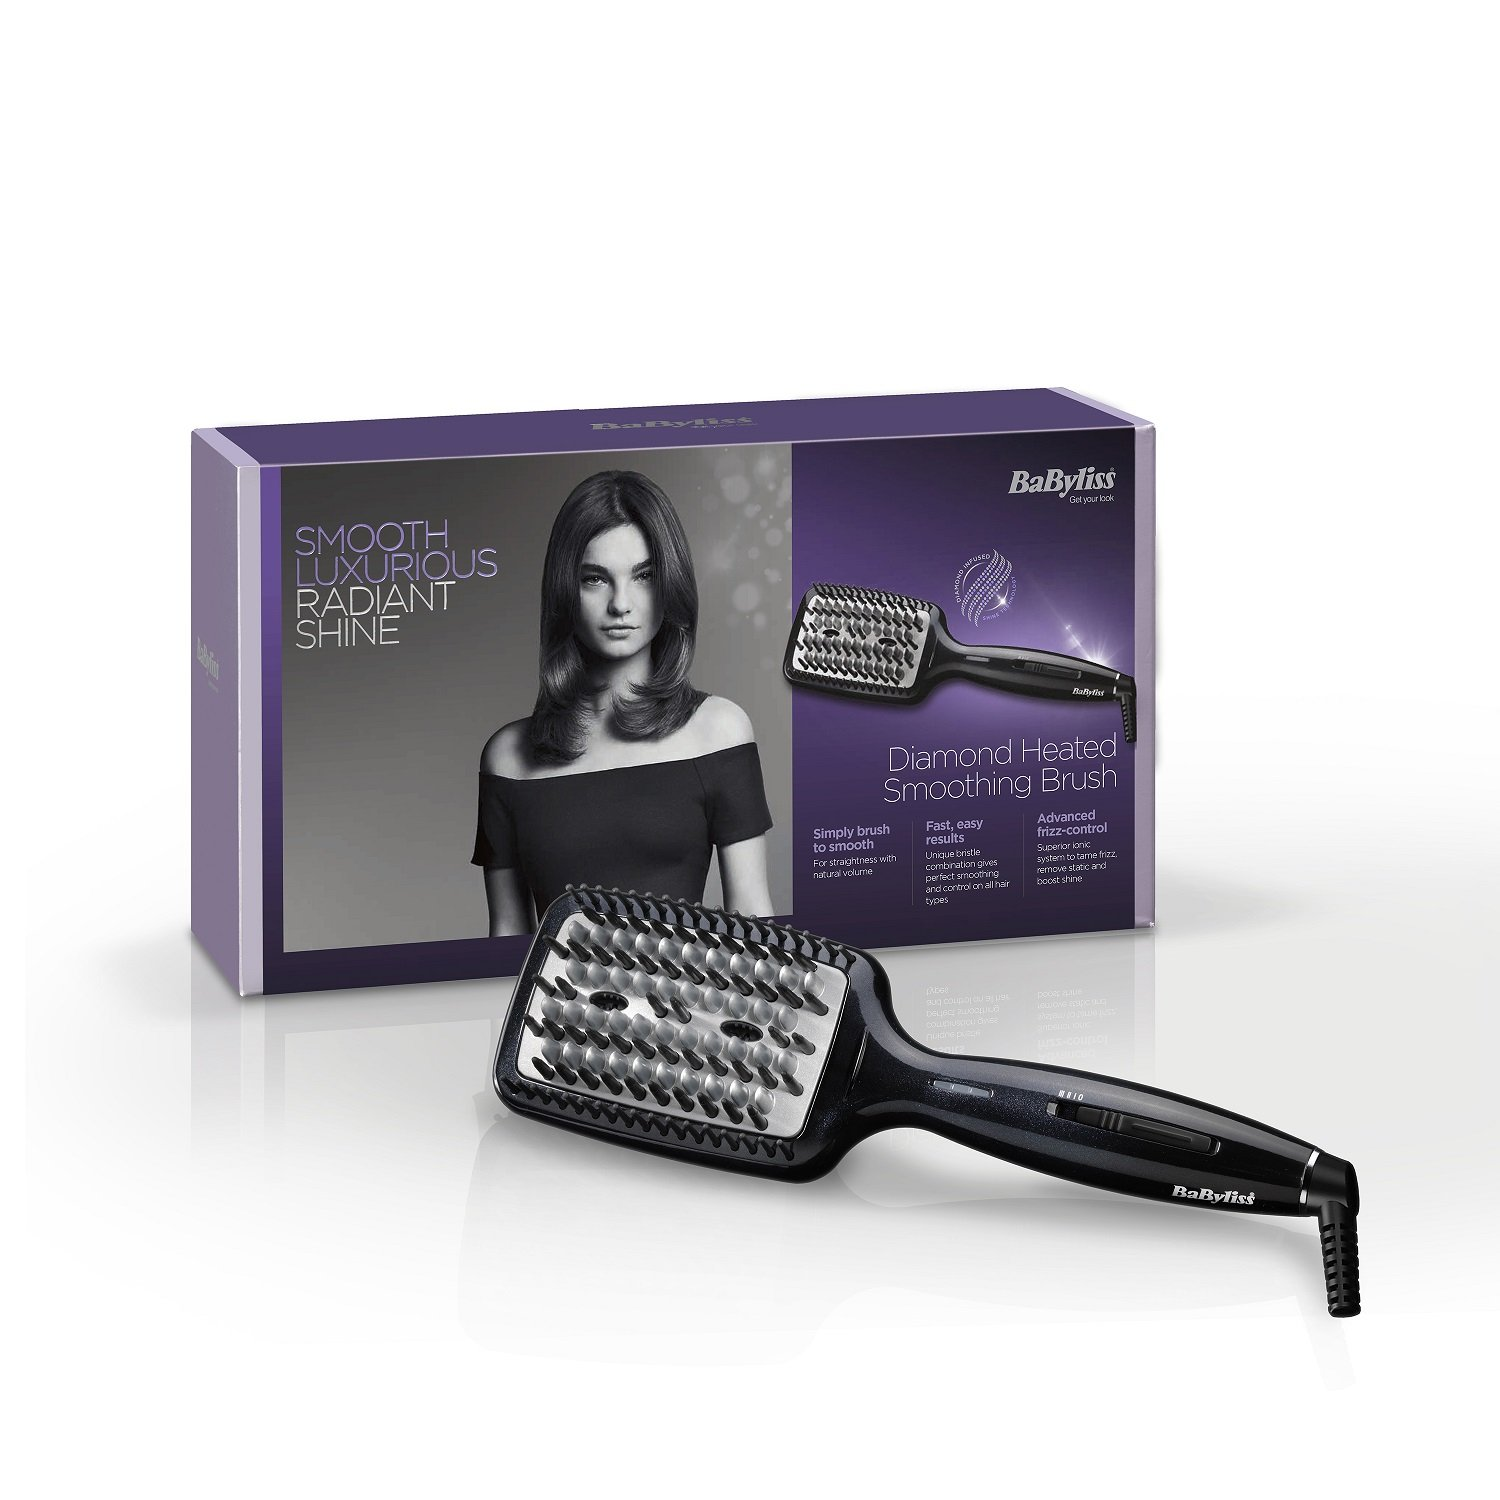 BaByliss Diamond Heated Smoothing and Straightening Brush